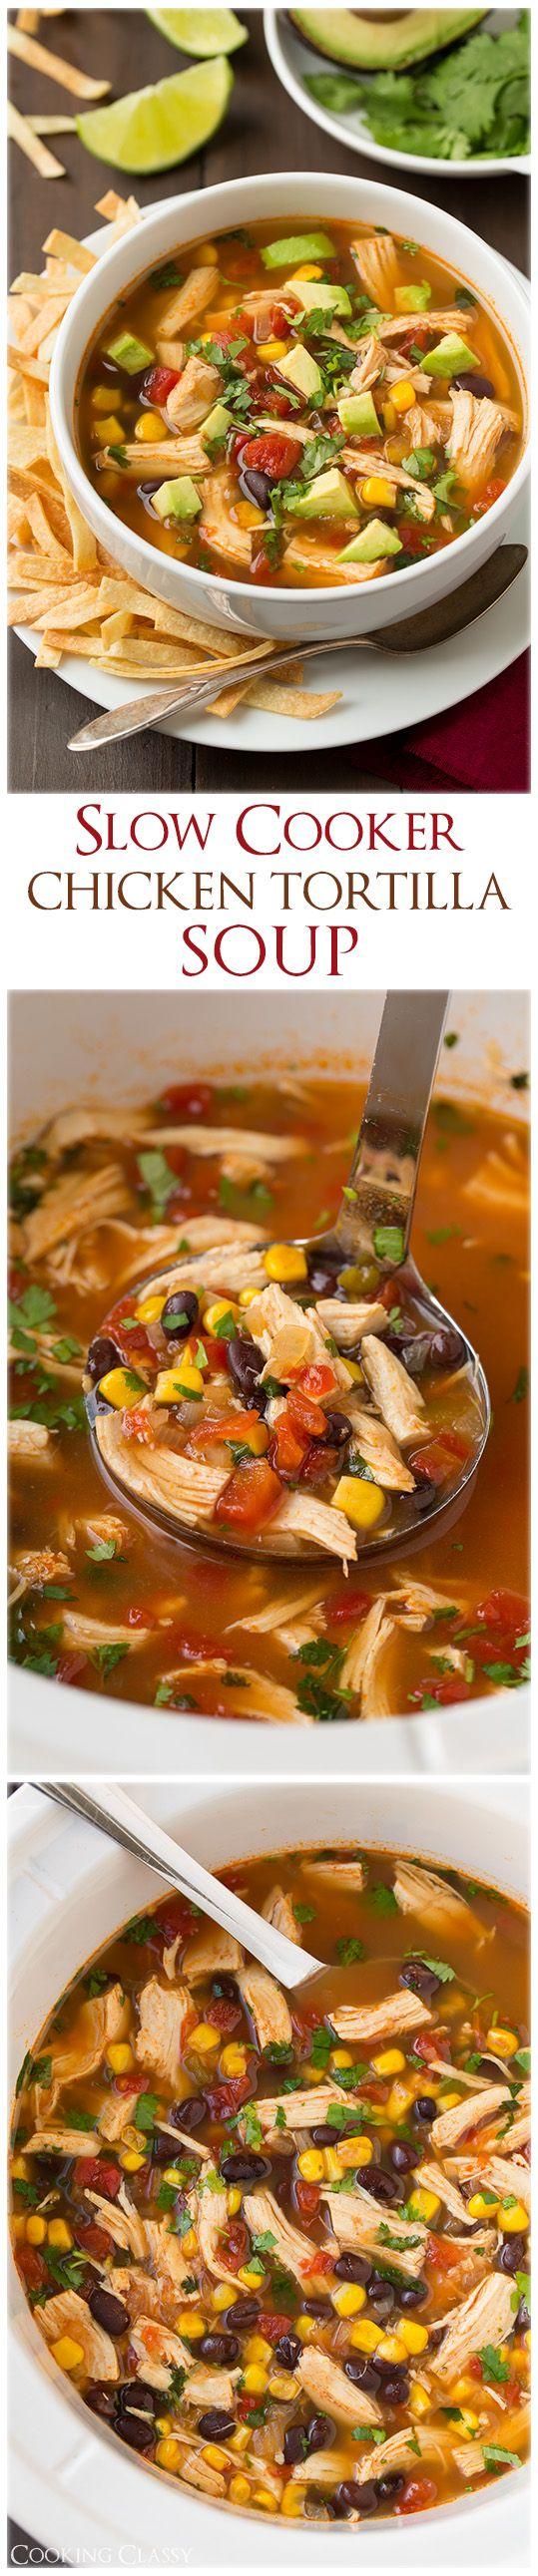 Slow Cooker Chicken Tortilla Soup - my whole family loved this! Adding it to our dinner rotation!